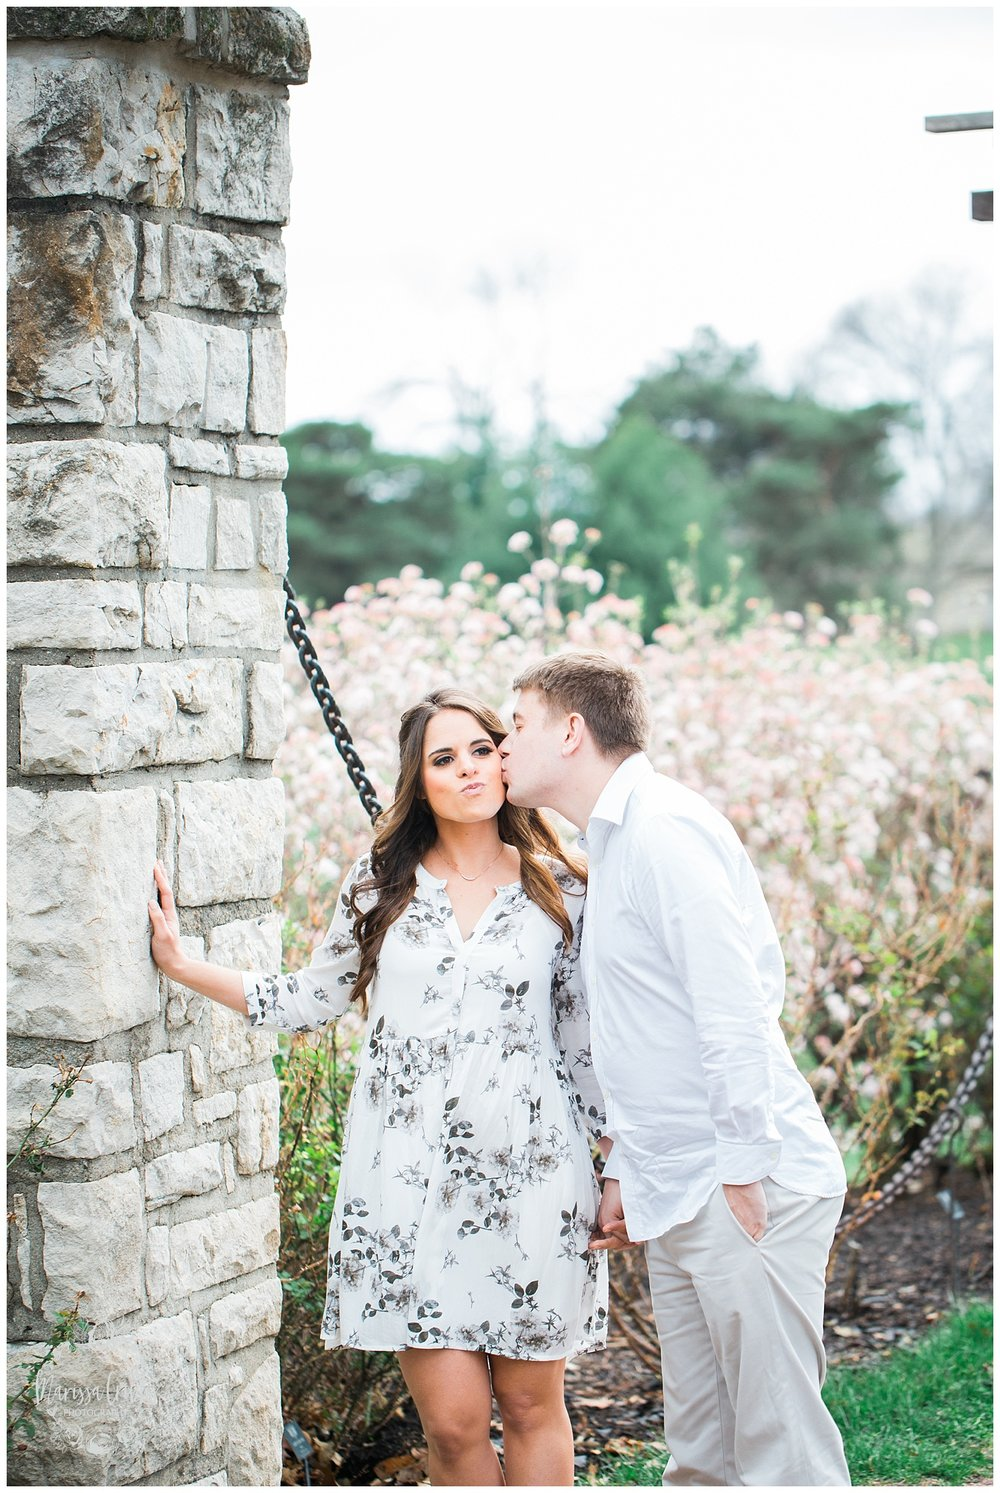 Loose Park Photography | KC Photographers | Marissa Cribbs Photography | KC Wedding Photographers_0633.jpg